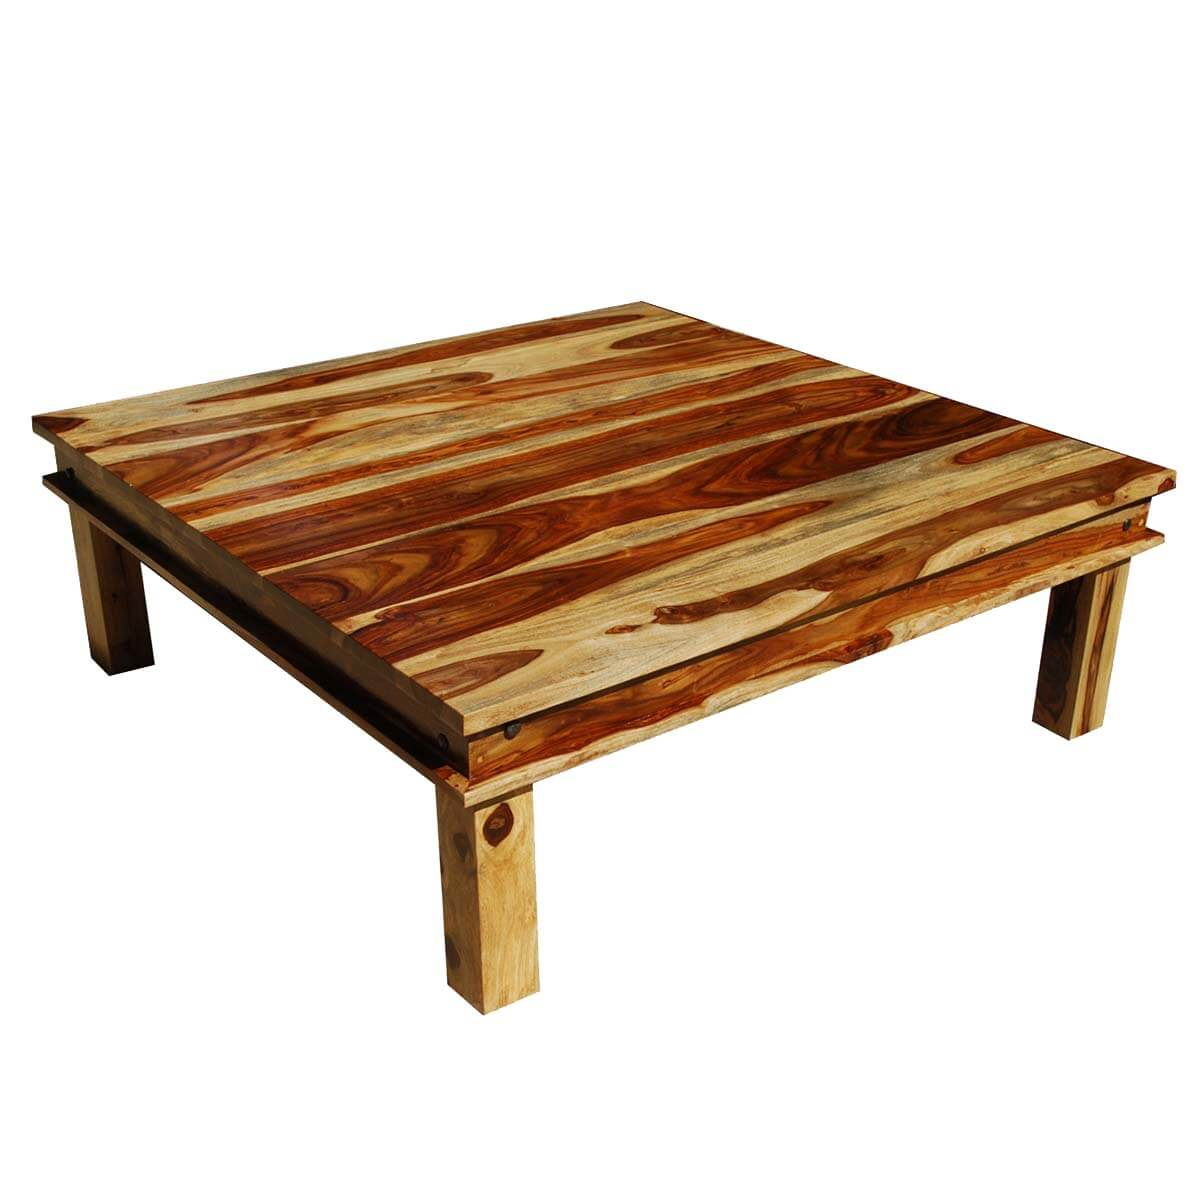 Couchtisch Rustikal Holz Large Square Wood Rustic Coffee Table